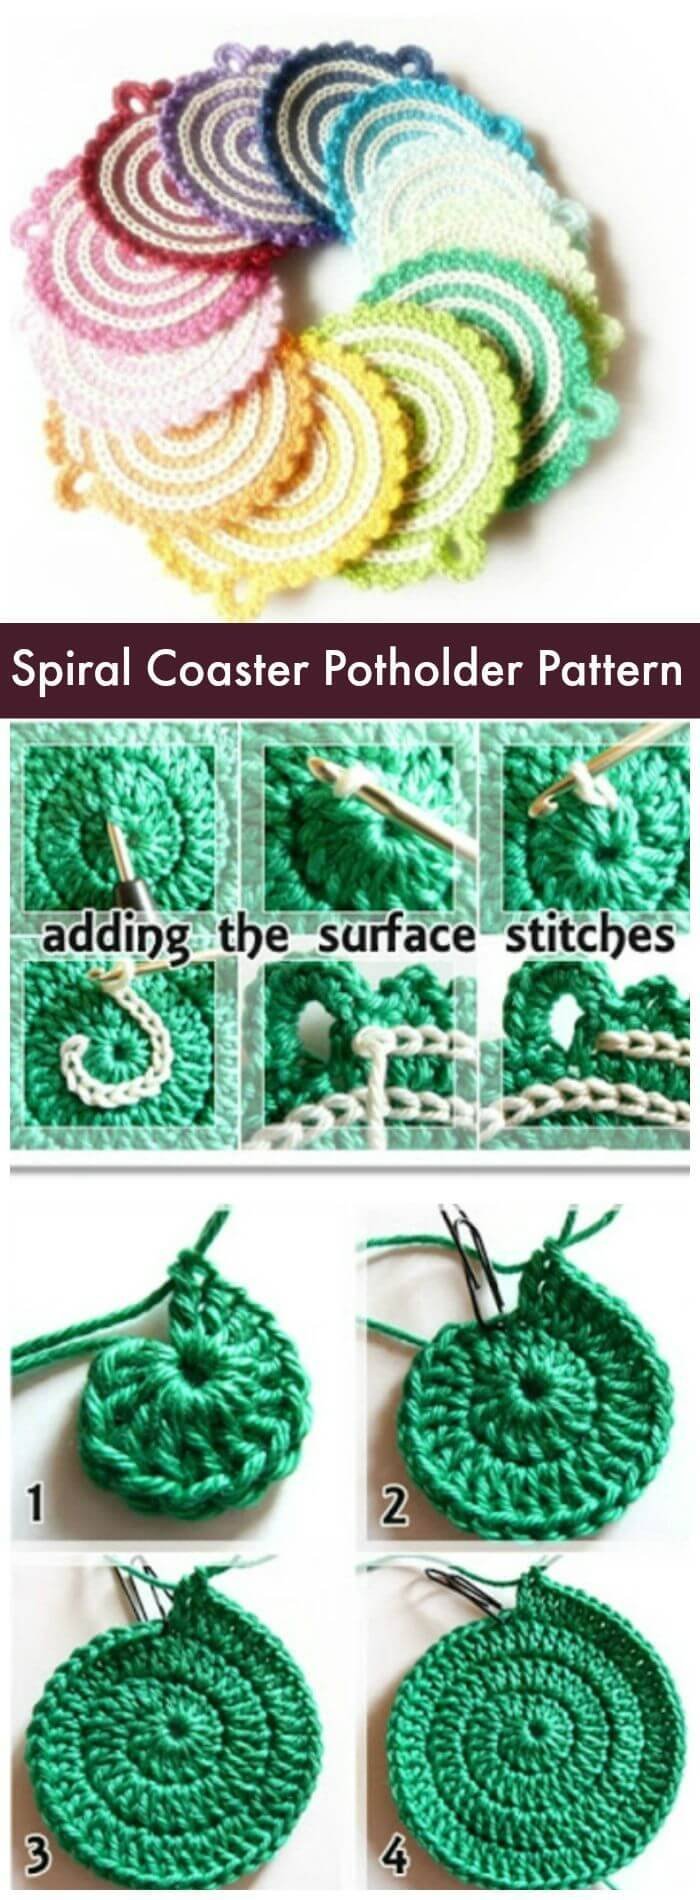 70 easy free crochet coaster patterns for beginners page 11 of diy spiral coaster potholder pattern free crochet coaster patterns with easy tutorials how to bankloansurffo Images